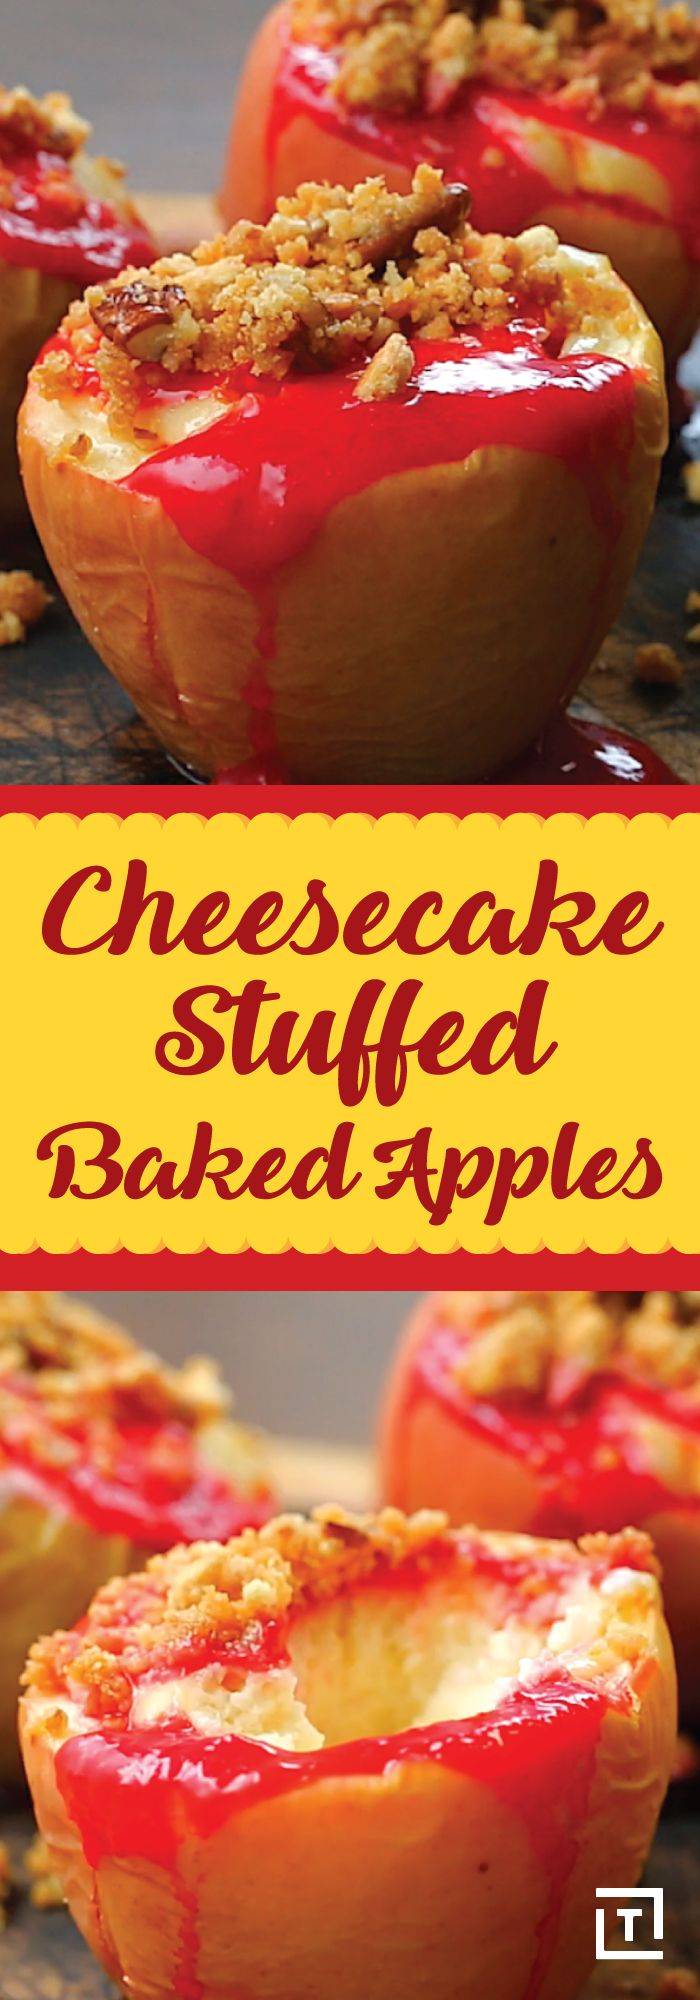 Here's the deal: this recipe by Twisted still counts as healthy because it involves apples and raspberry coulis, and you can't convince us otherwise. Maybe we're in denial, but we don't mind one bit because these cheesecake-stuffed apples are just that good. Creamy, sweet, and oh so seasonal, these flavor-obsessed treats are the ideal dessert for any festive holiday meal.